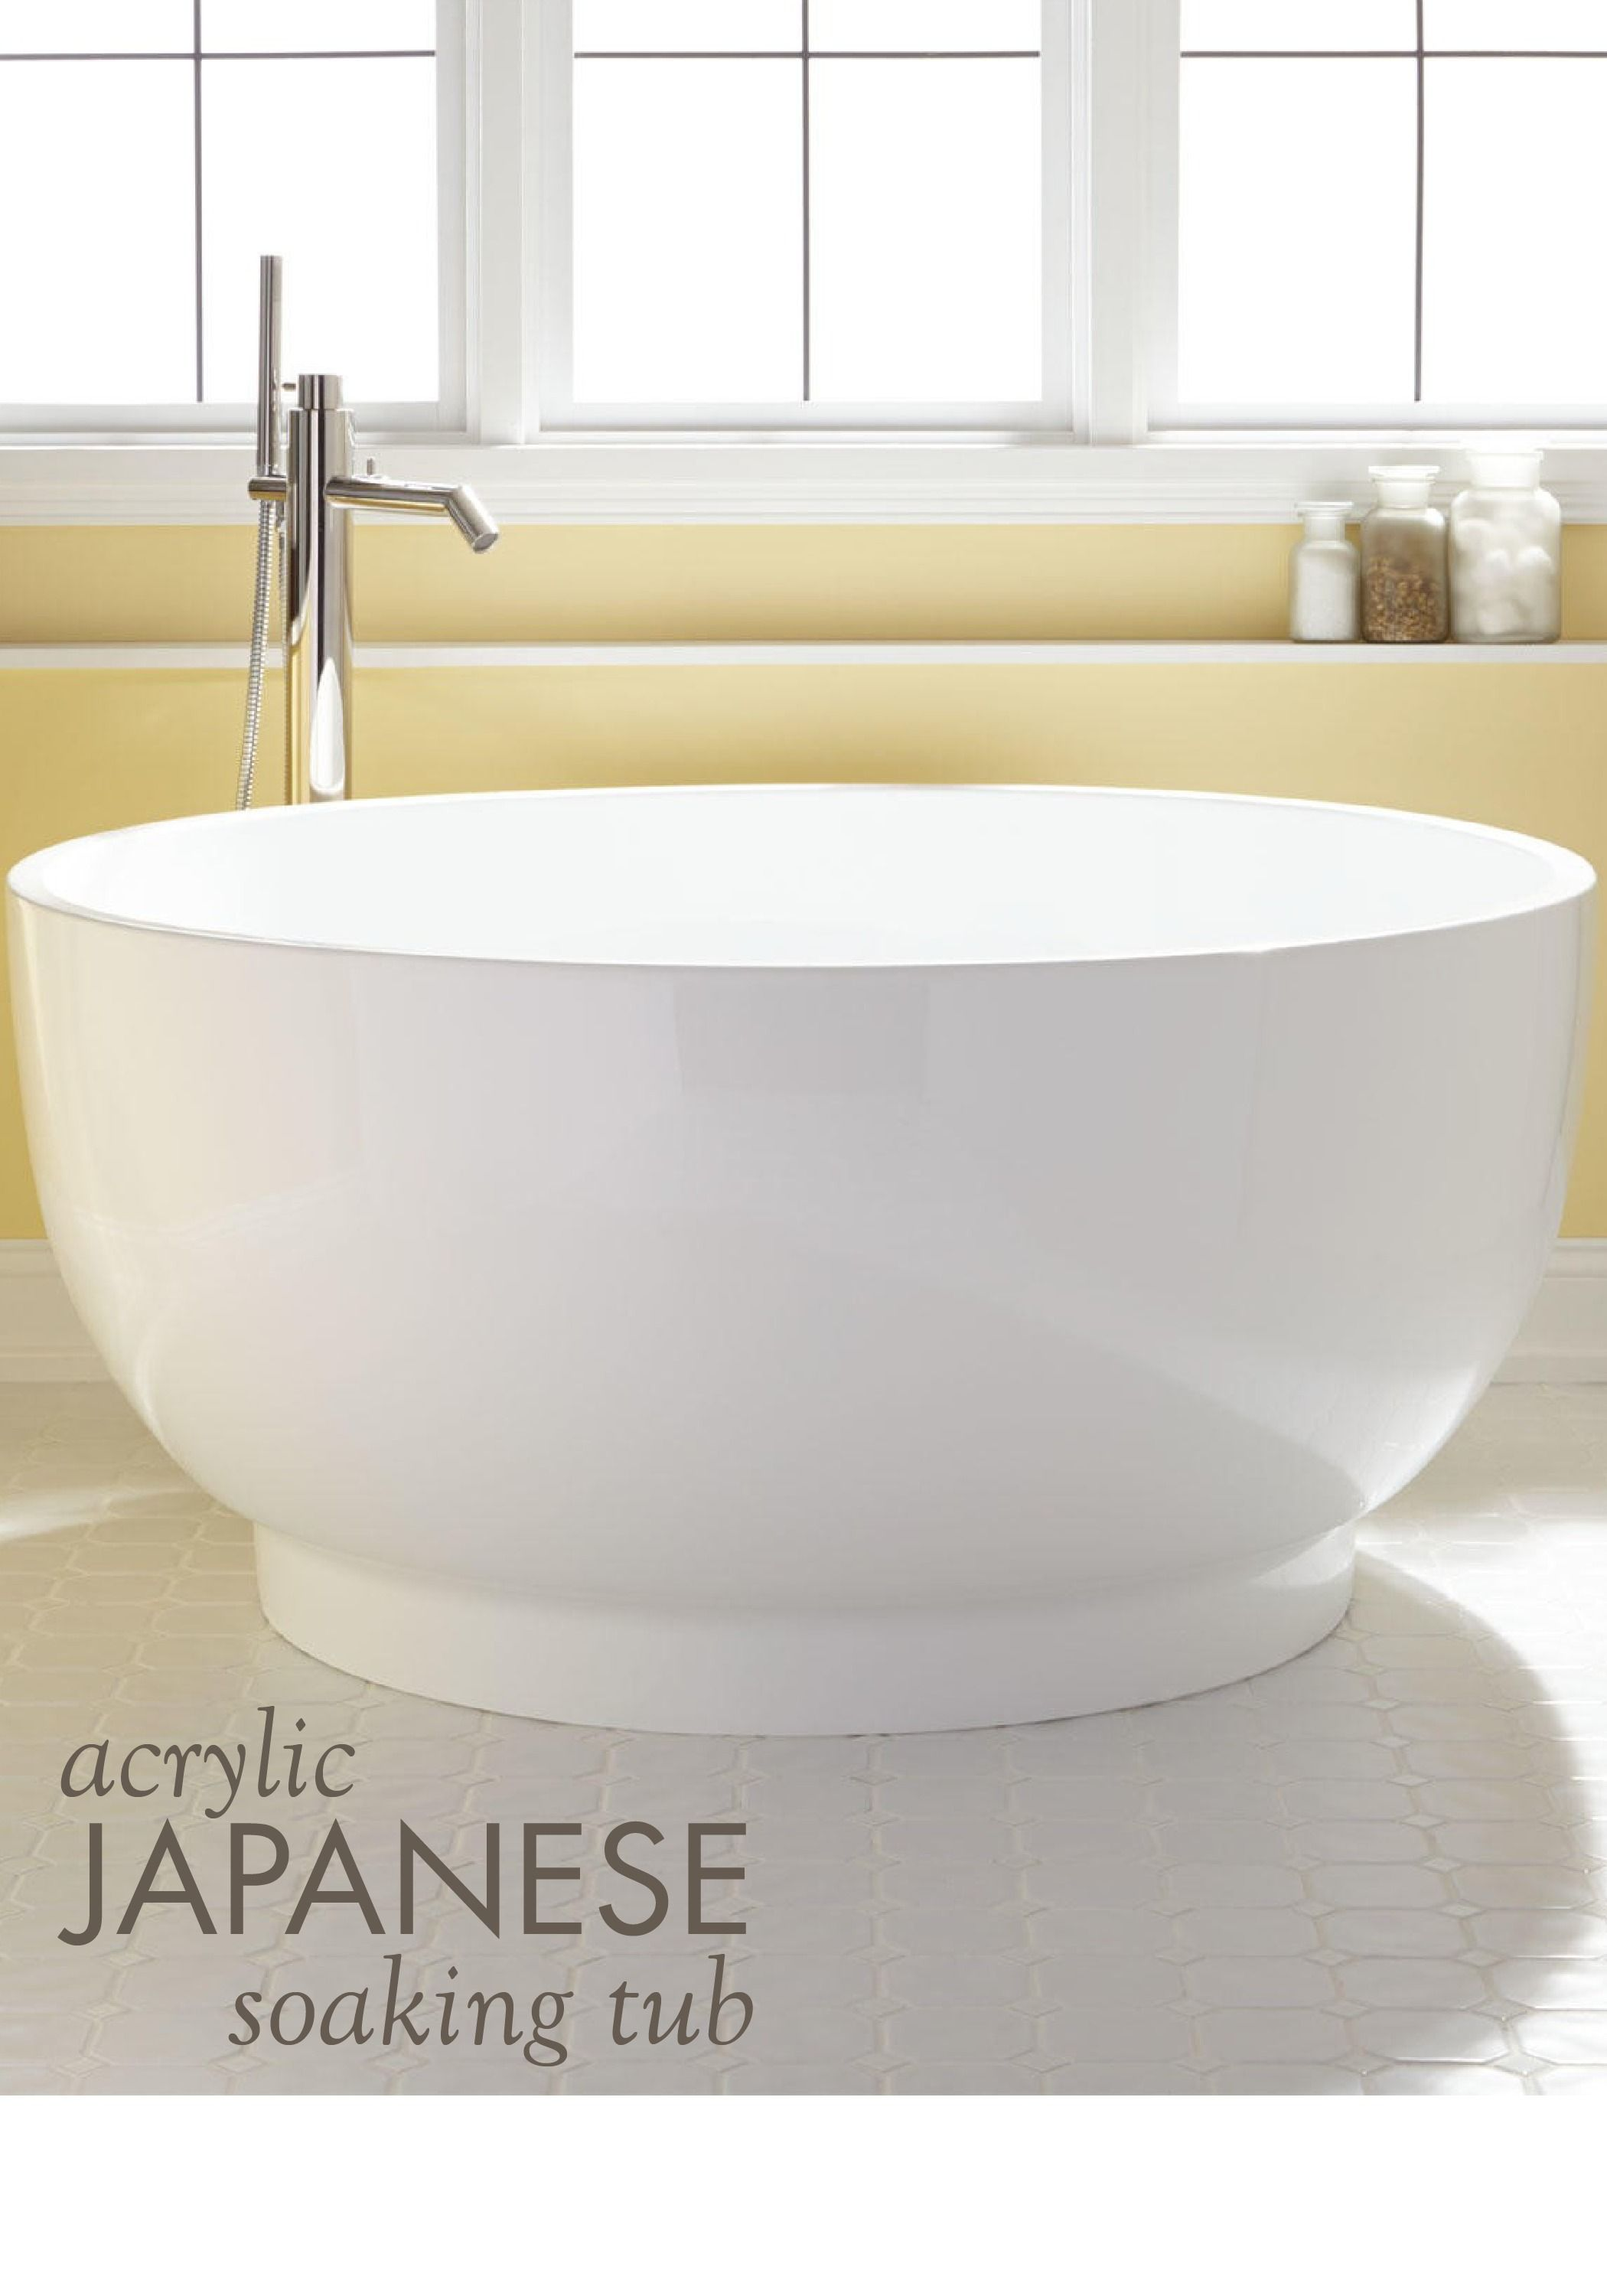 51 kaimu acrylic japanese soaking tub japanese soaking for Acrylic soaker tub